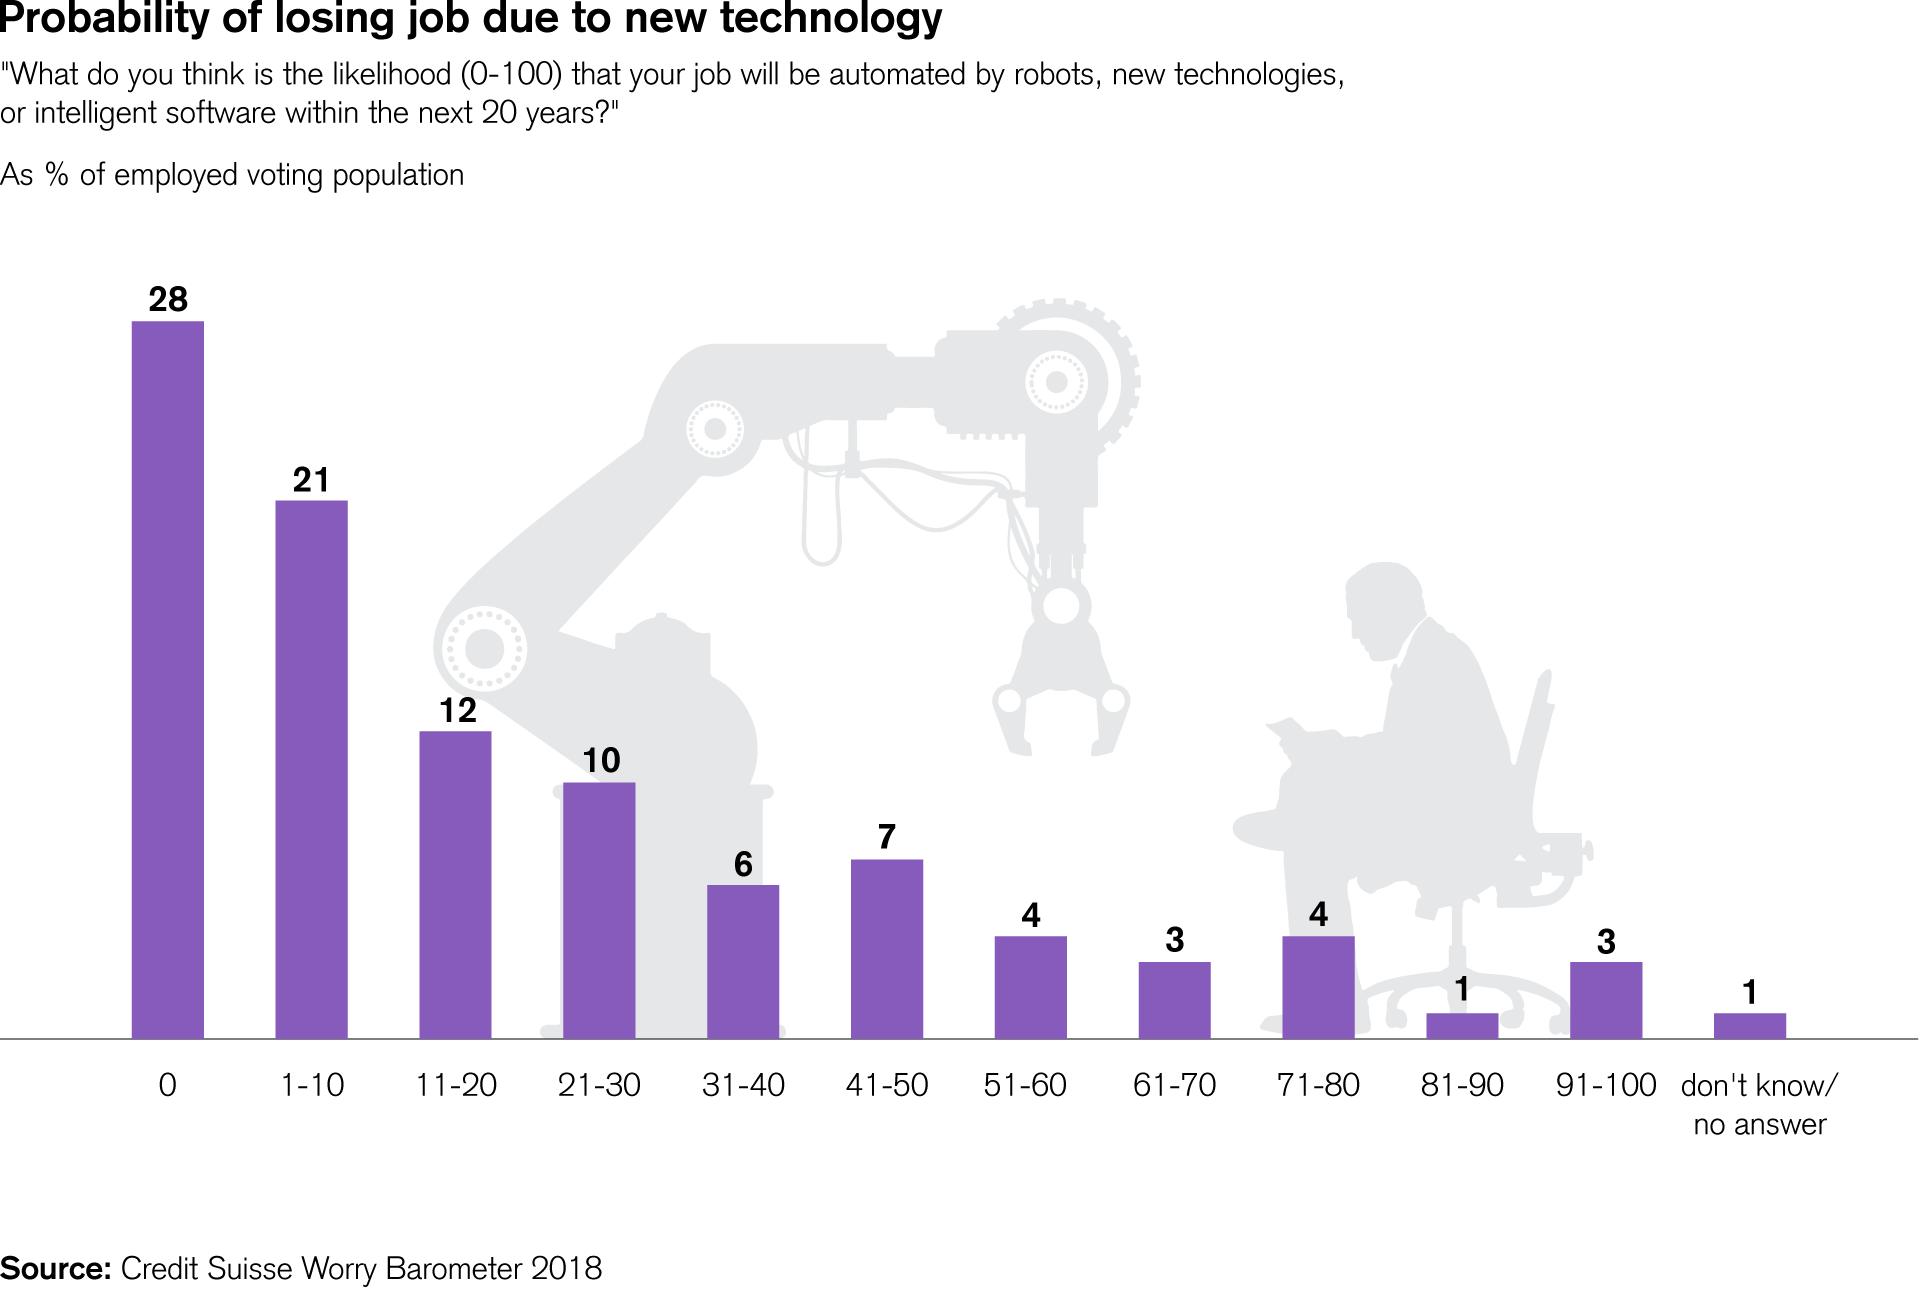 Probability of losing job due to new technology